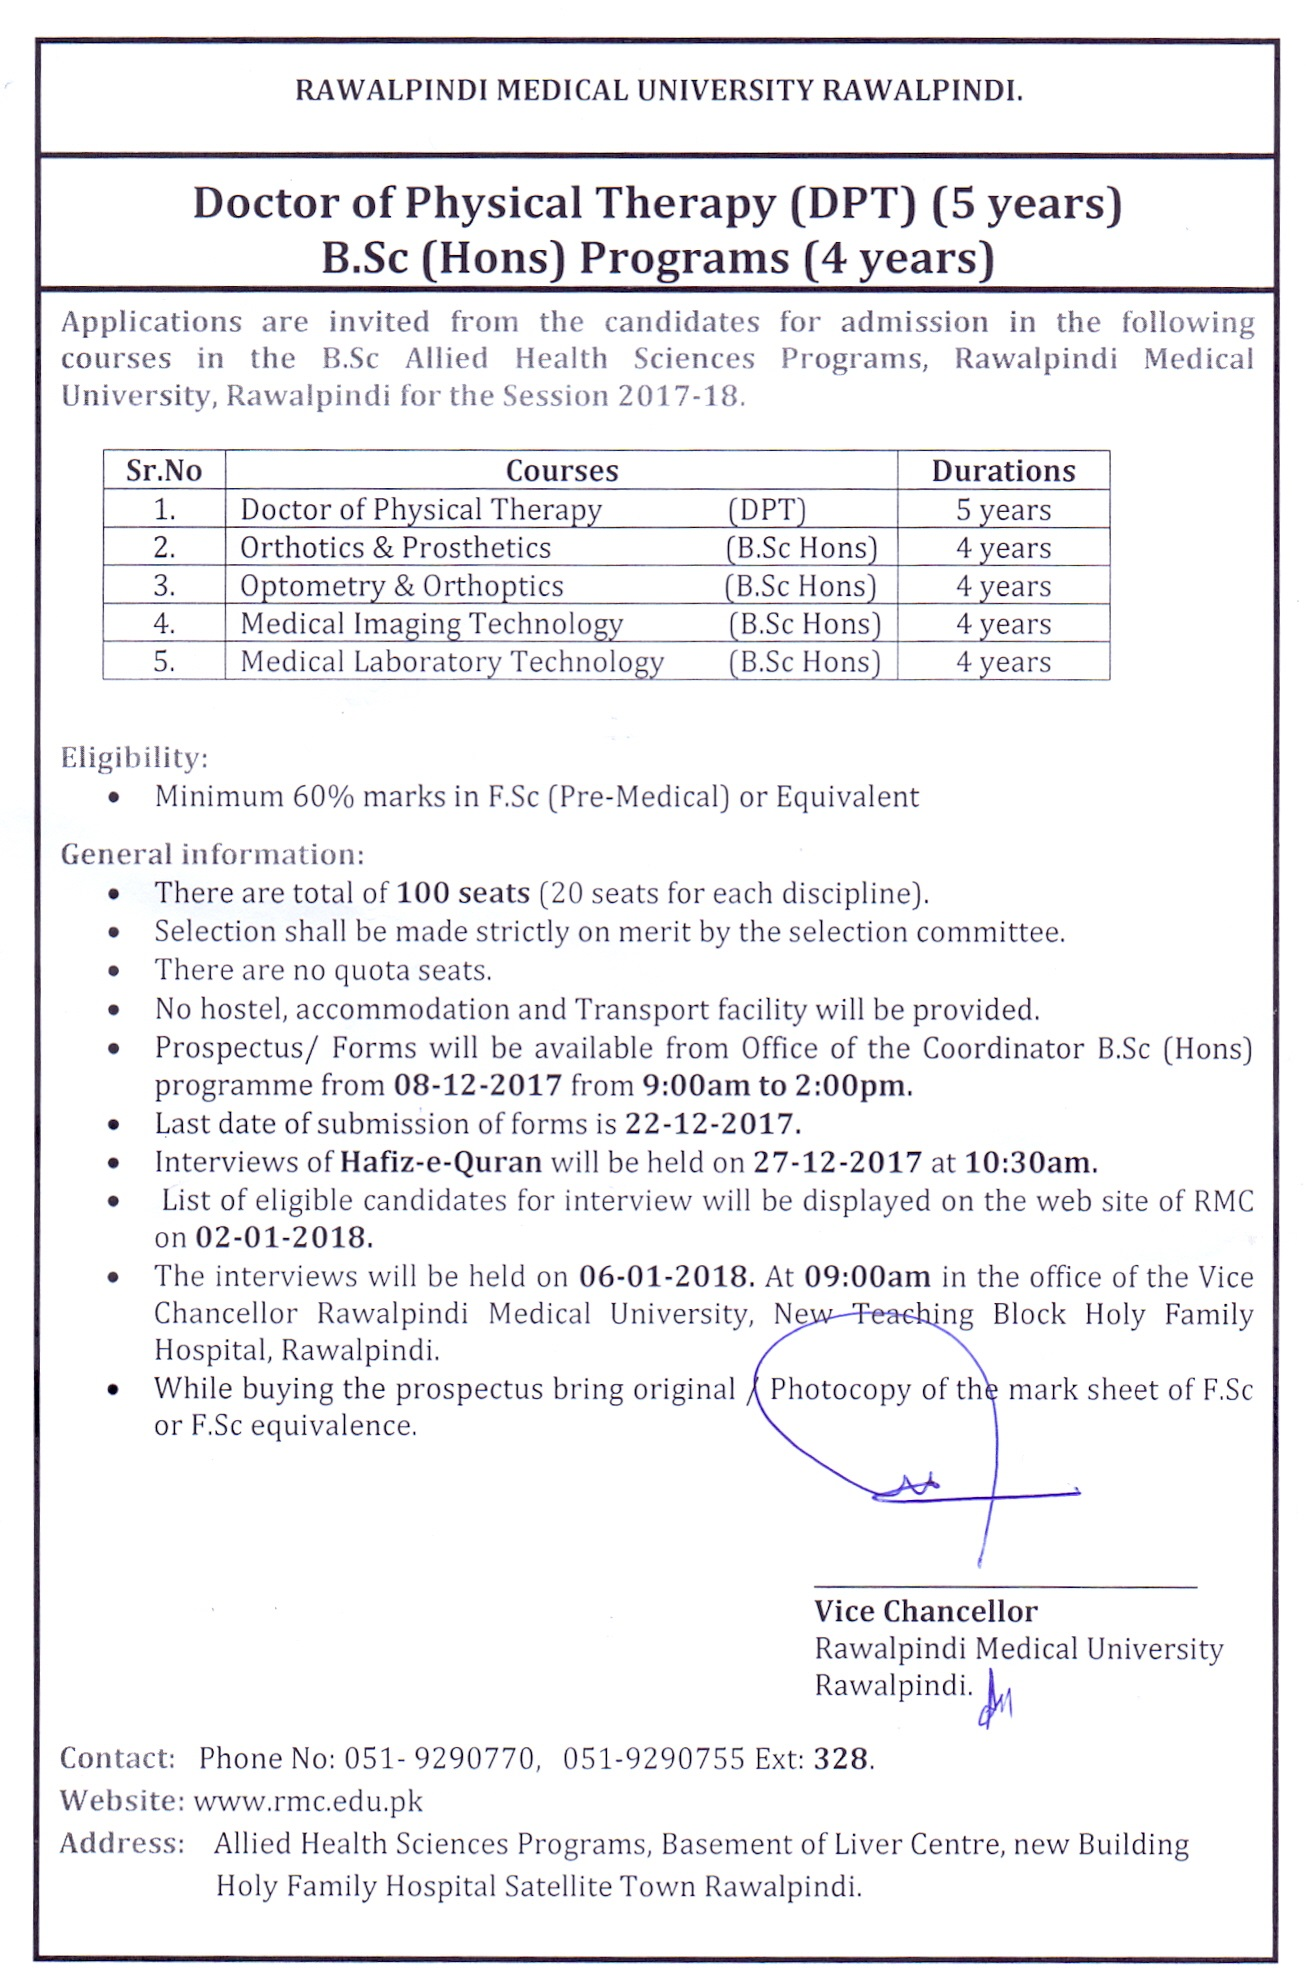 Rawalpindi Medical University Admissions 2017-18